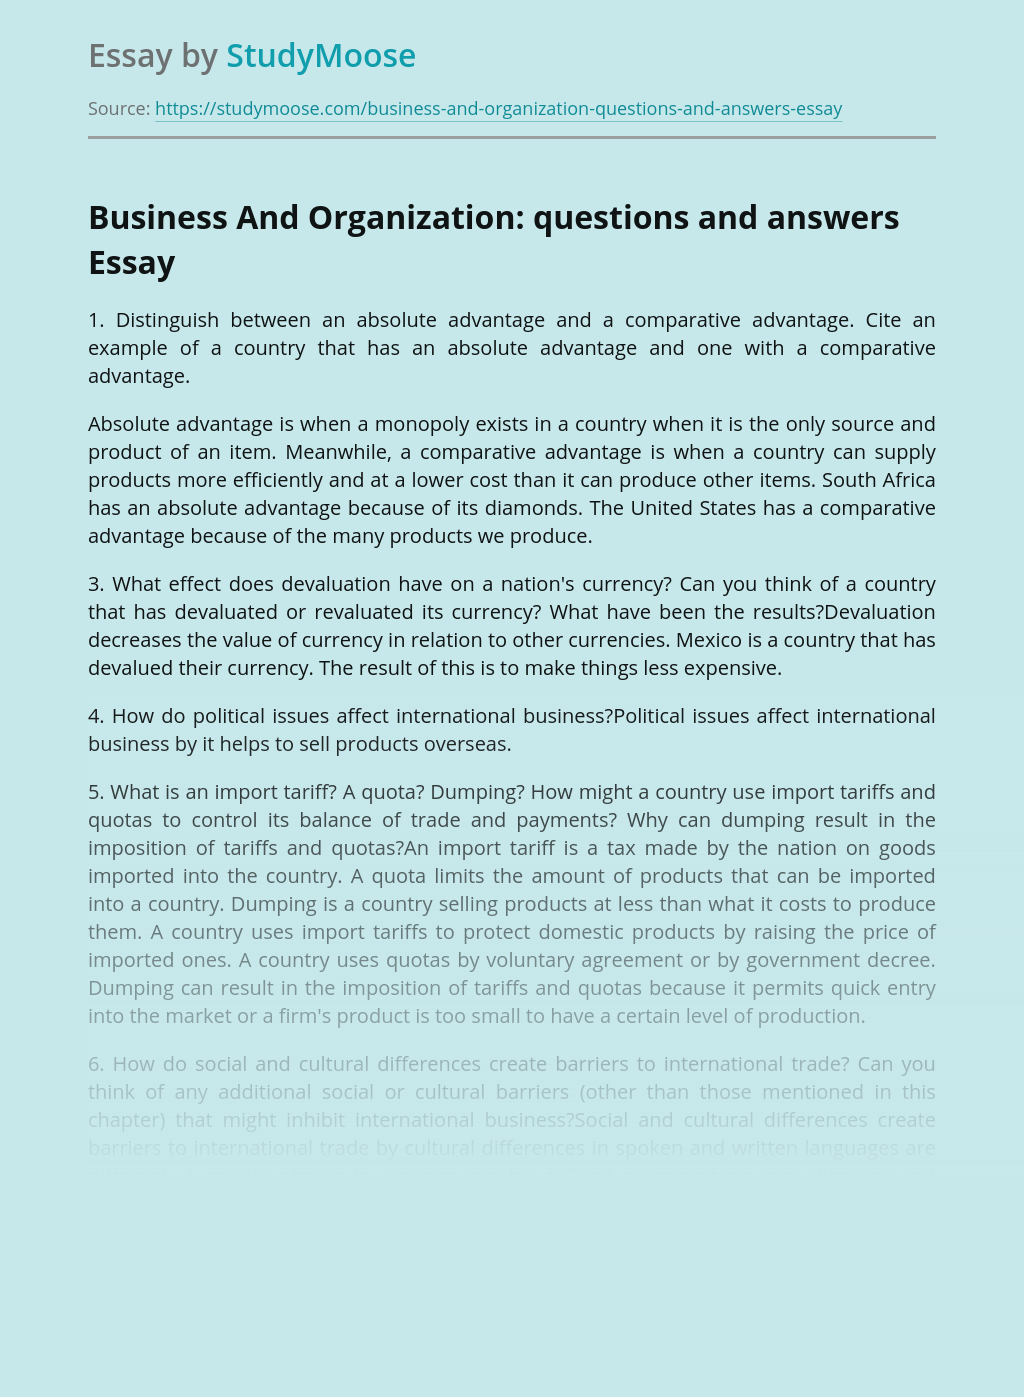 Business And Organization: questions and answers